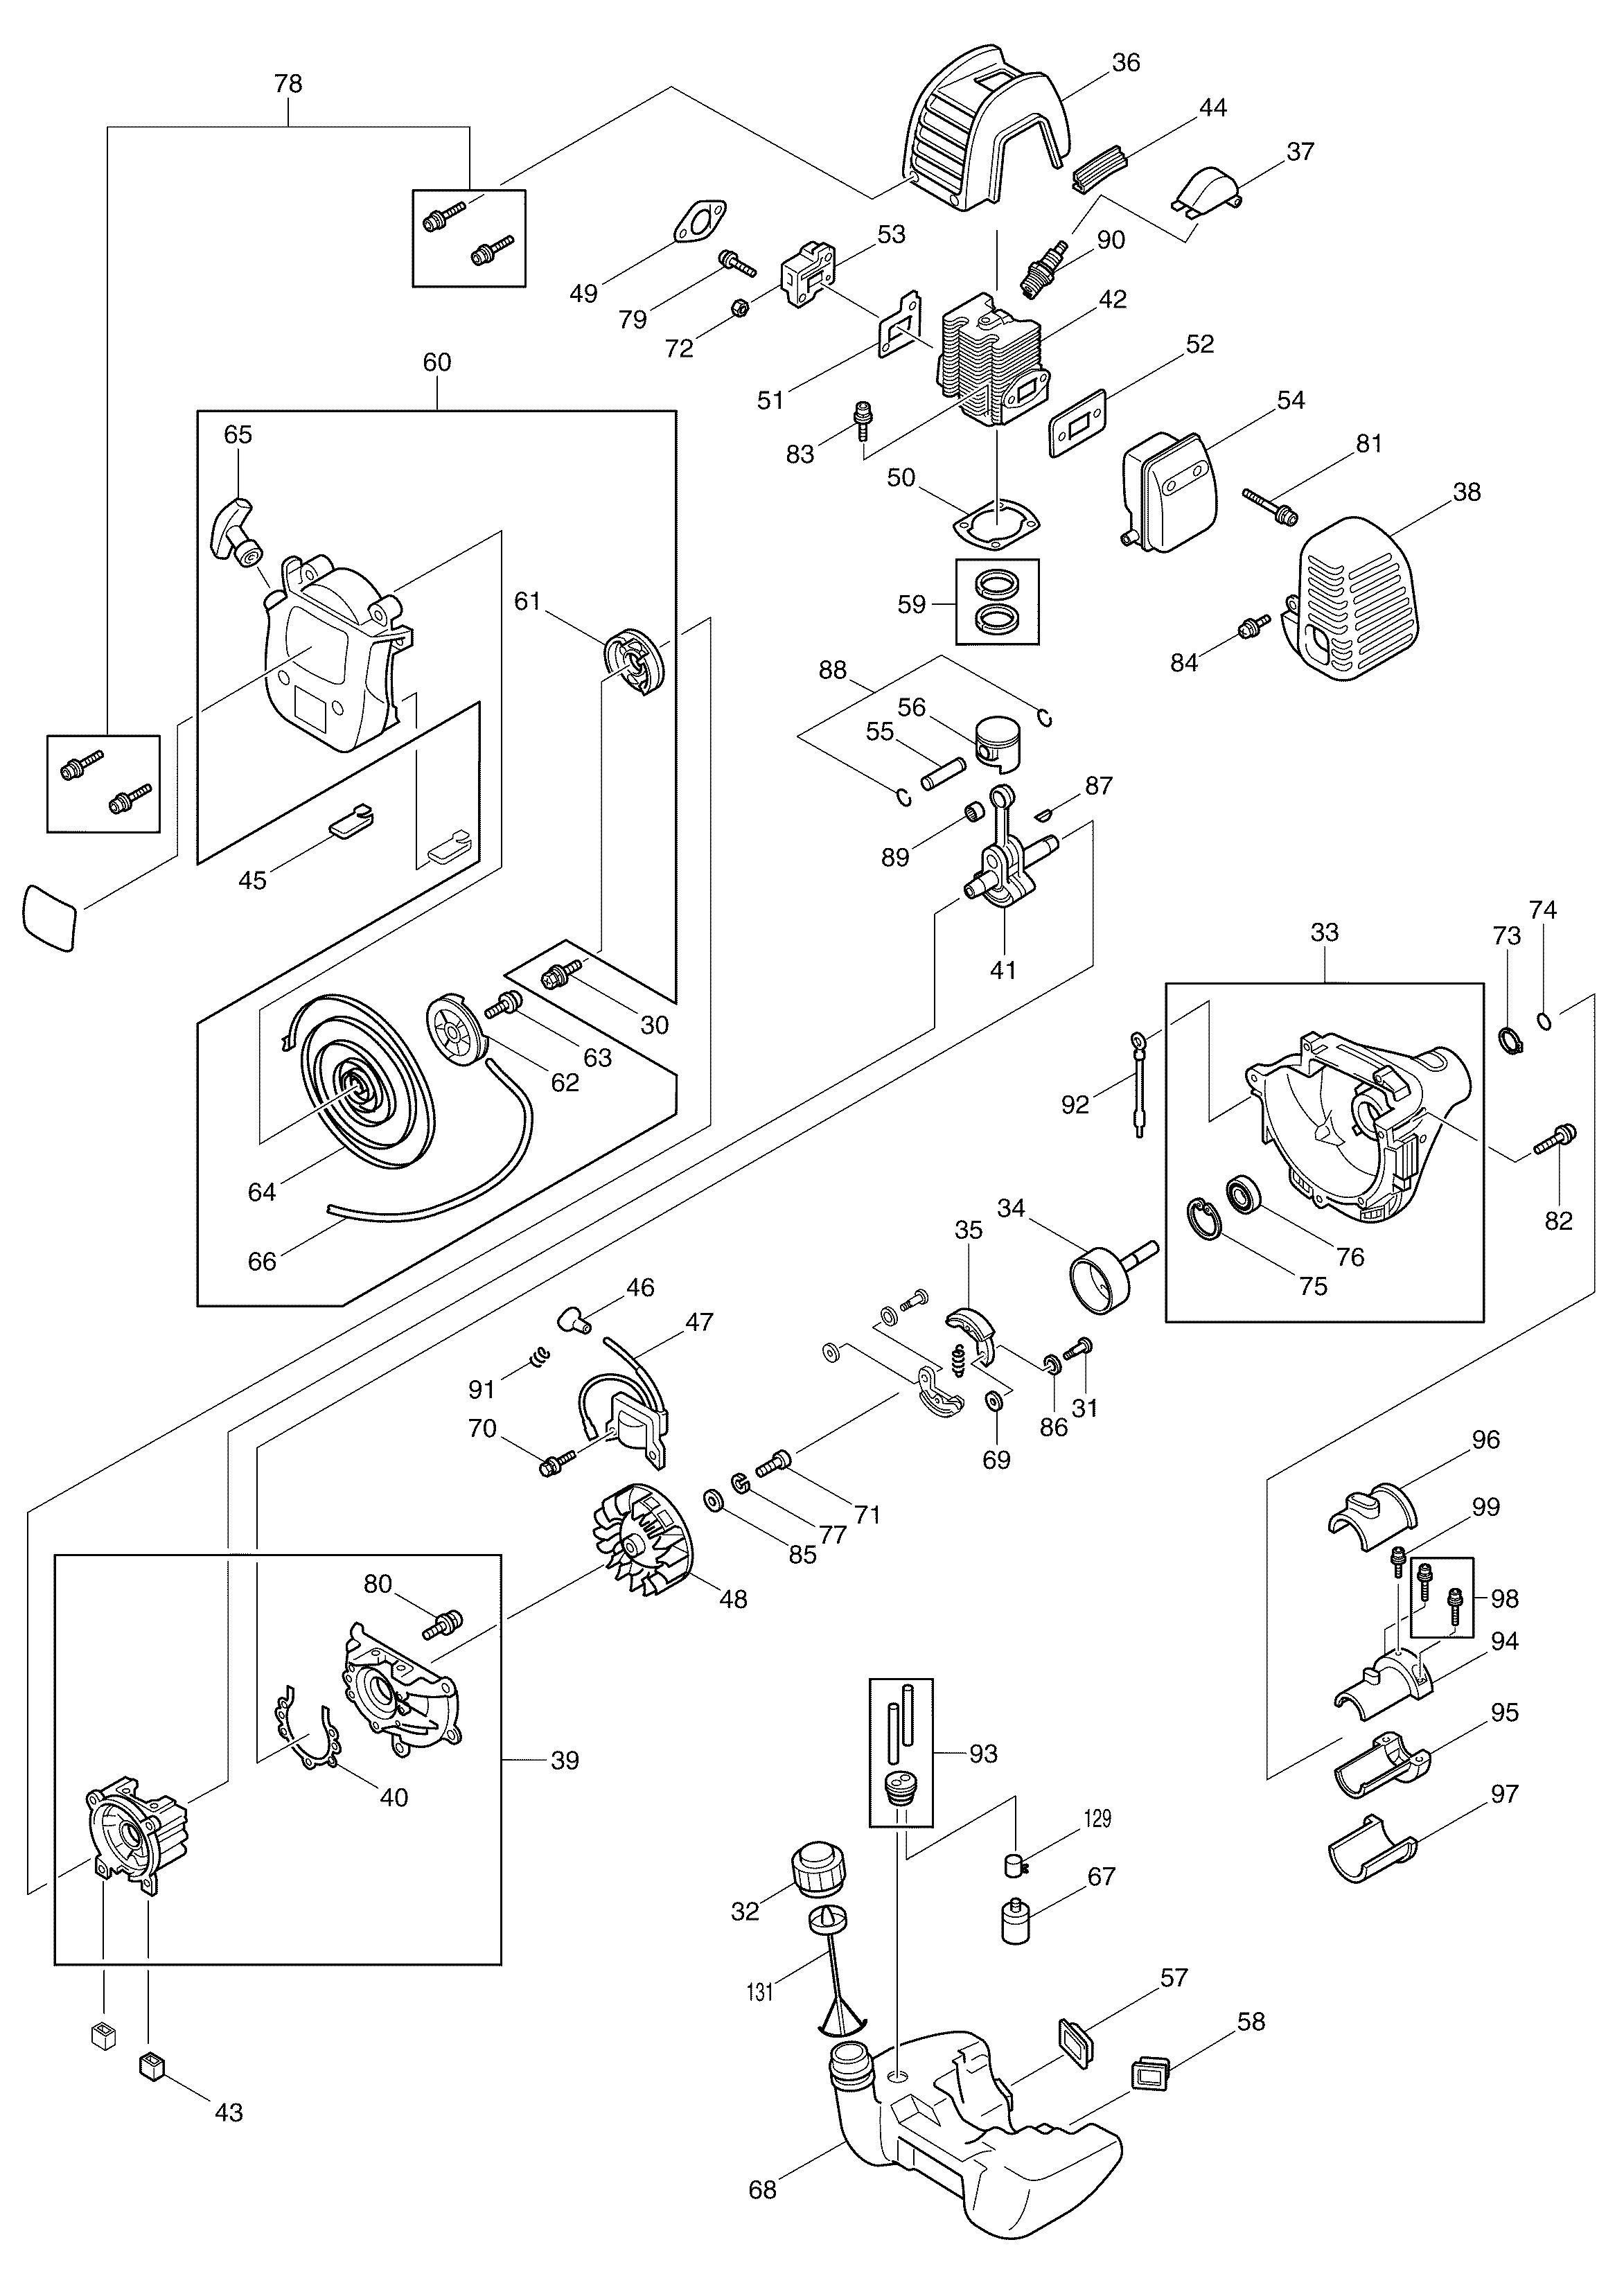 Makita 1 2 Drill Parts | Wiring Diagram Database on ingersoll rand drill diagram, power drill diagram, bosch drill diagram, hammer drill diagram, drill bit diagram, black and decker drill diagram, drill press diagram, milwaukee drill diagram, hilti drill diagram, pillar drill diagram, drill chuck diagram,